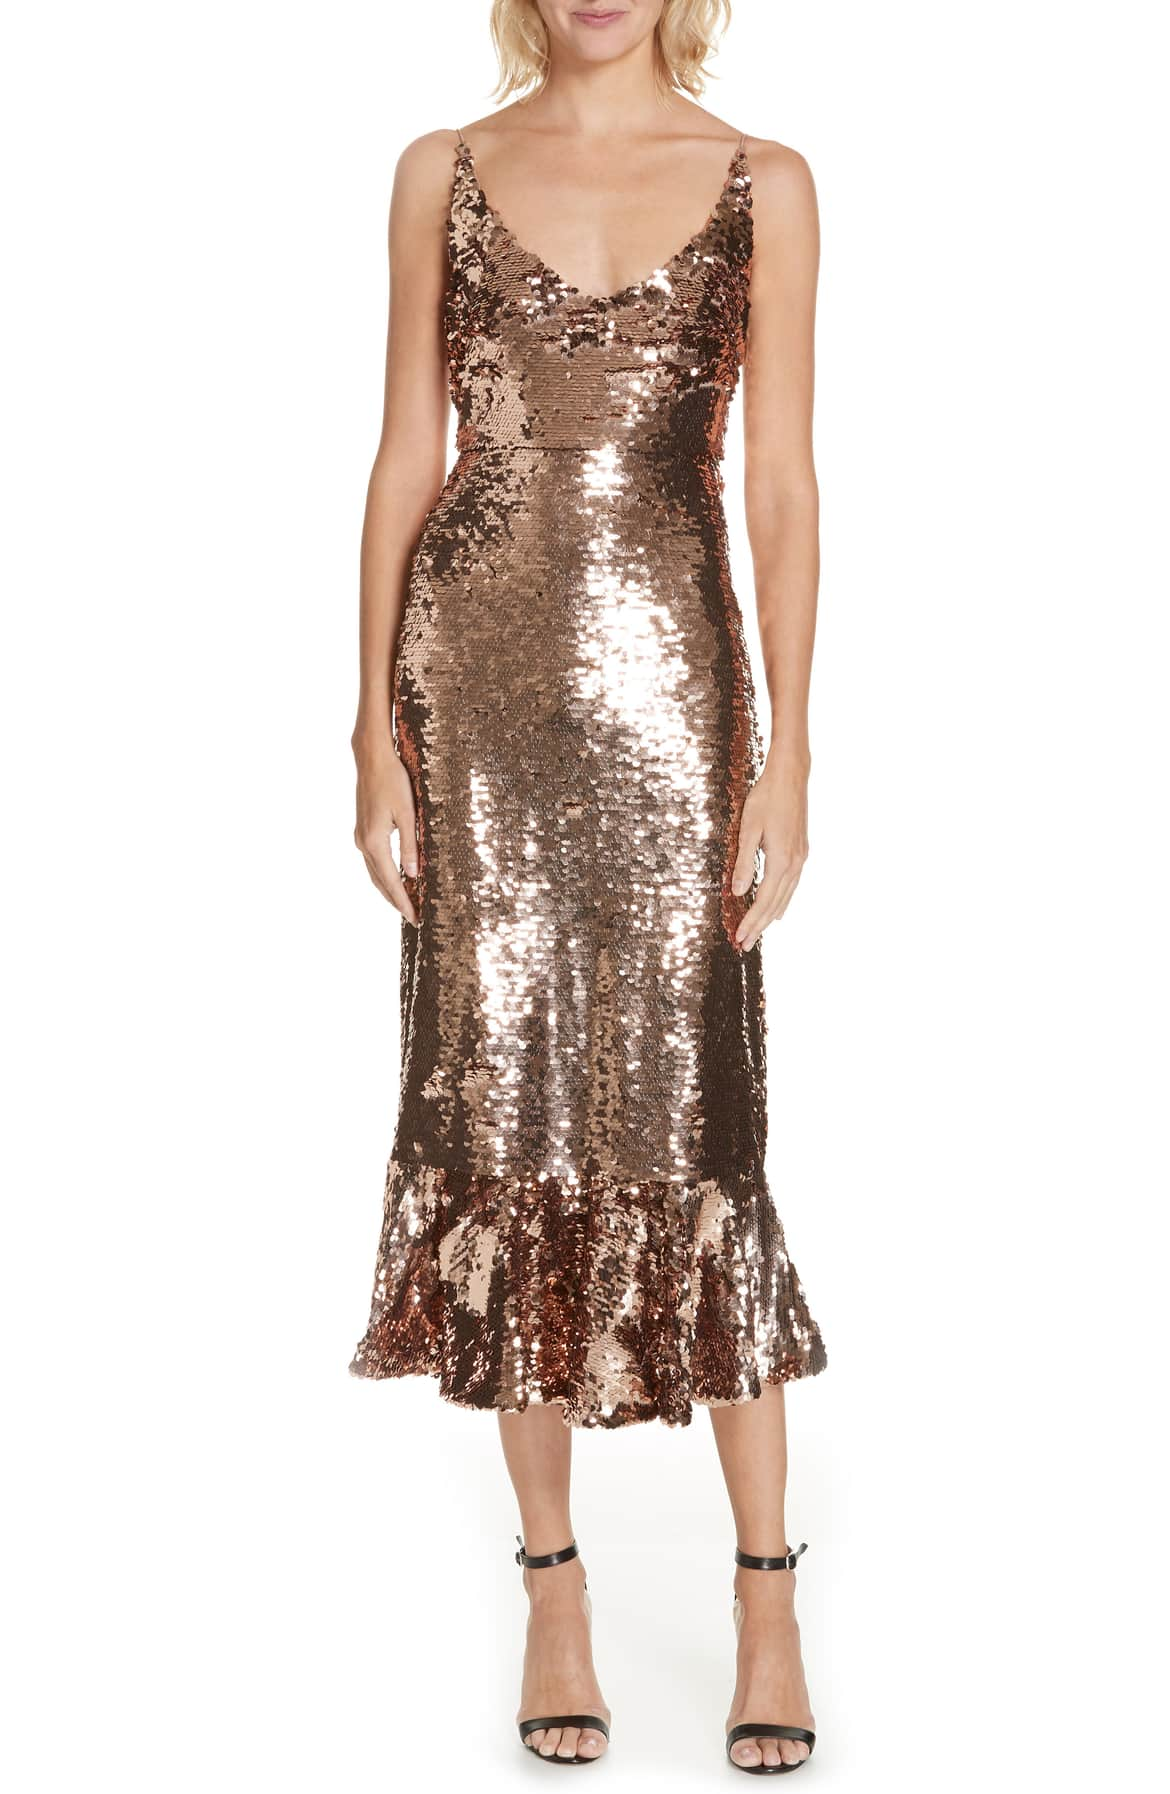 <p>Shimmering bronze sequins sweep across a curve-hugging midi that releases into a twirly ruffled hem for mesmerizing movement all night long. $795. (Image: Nordstrom){&nbsp;}</p><p></p>